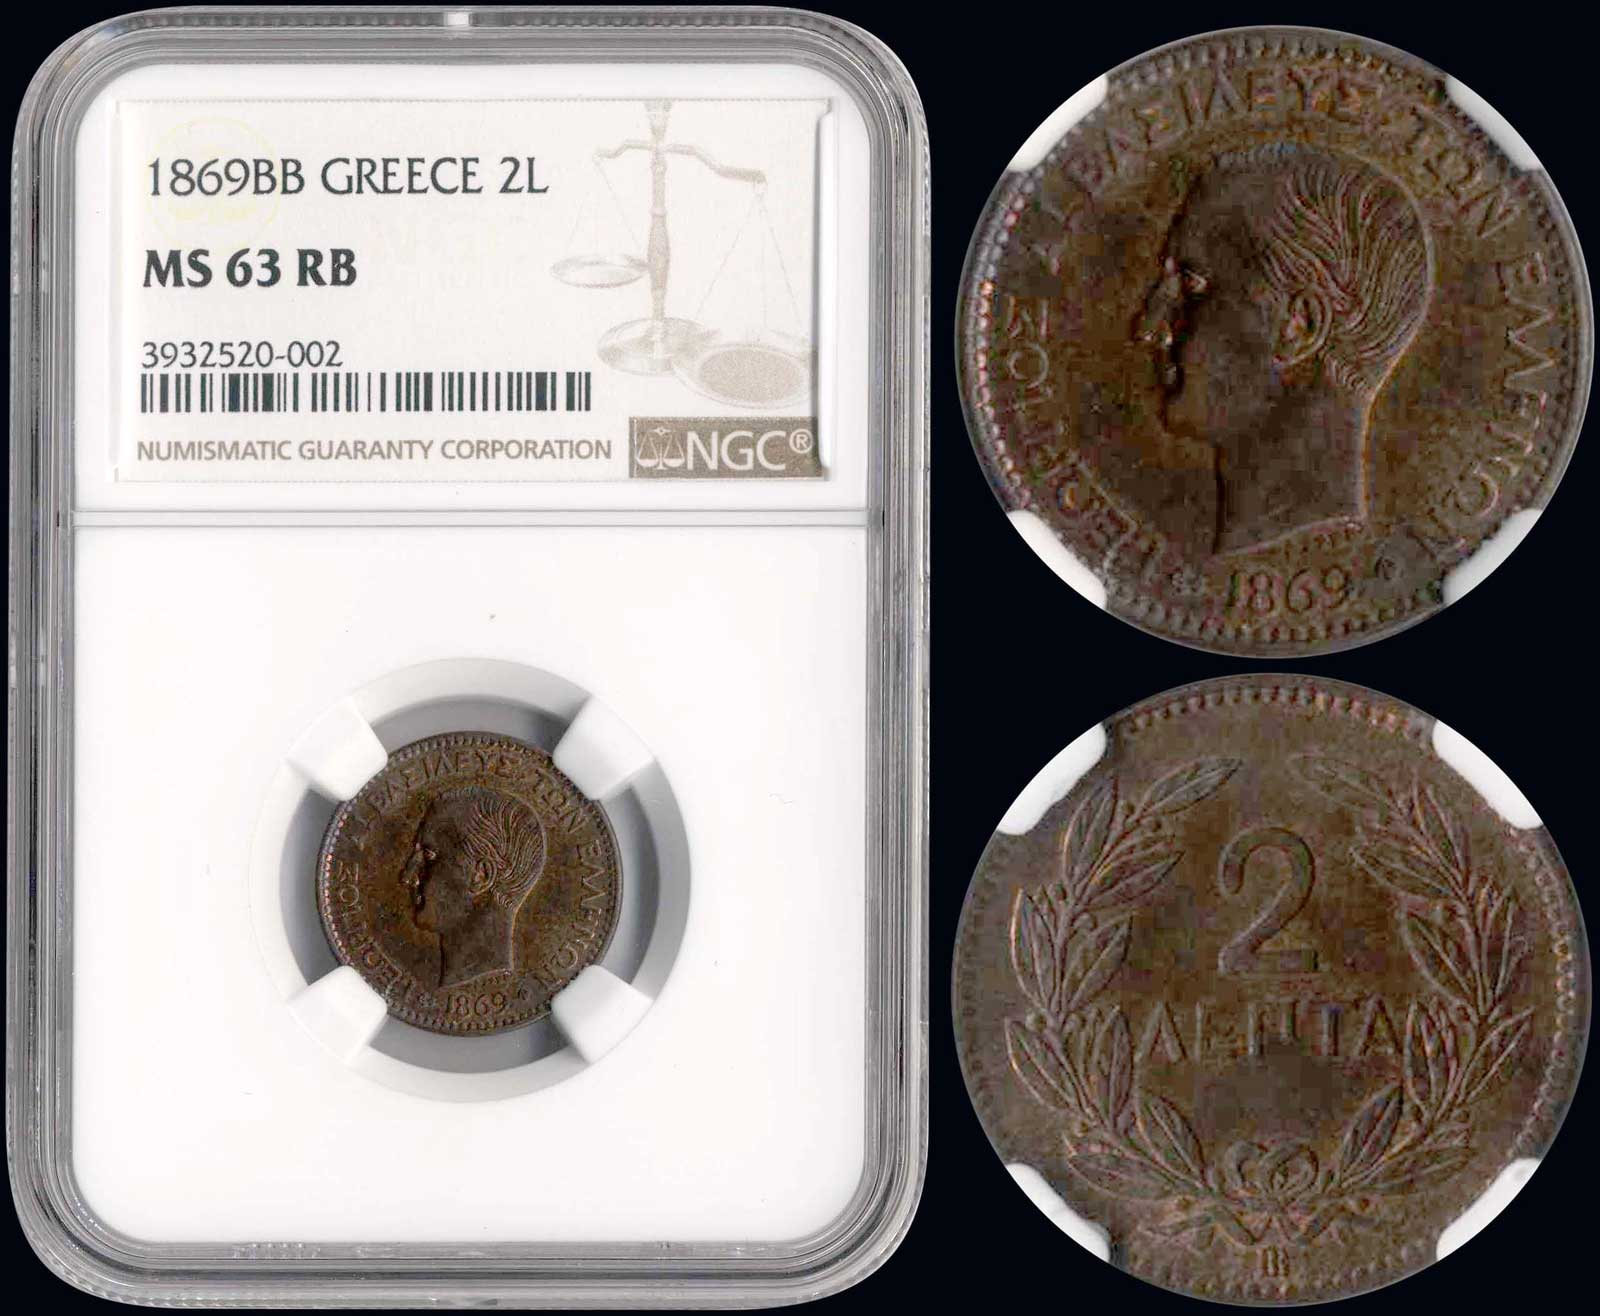 Lot 9076 - GREECE-  COINS & TOKENS king george i -  A. Karamitsos Public & LIVE Bid Auction 610 Coins, Medals & Banknotes